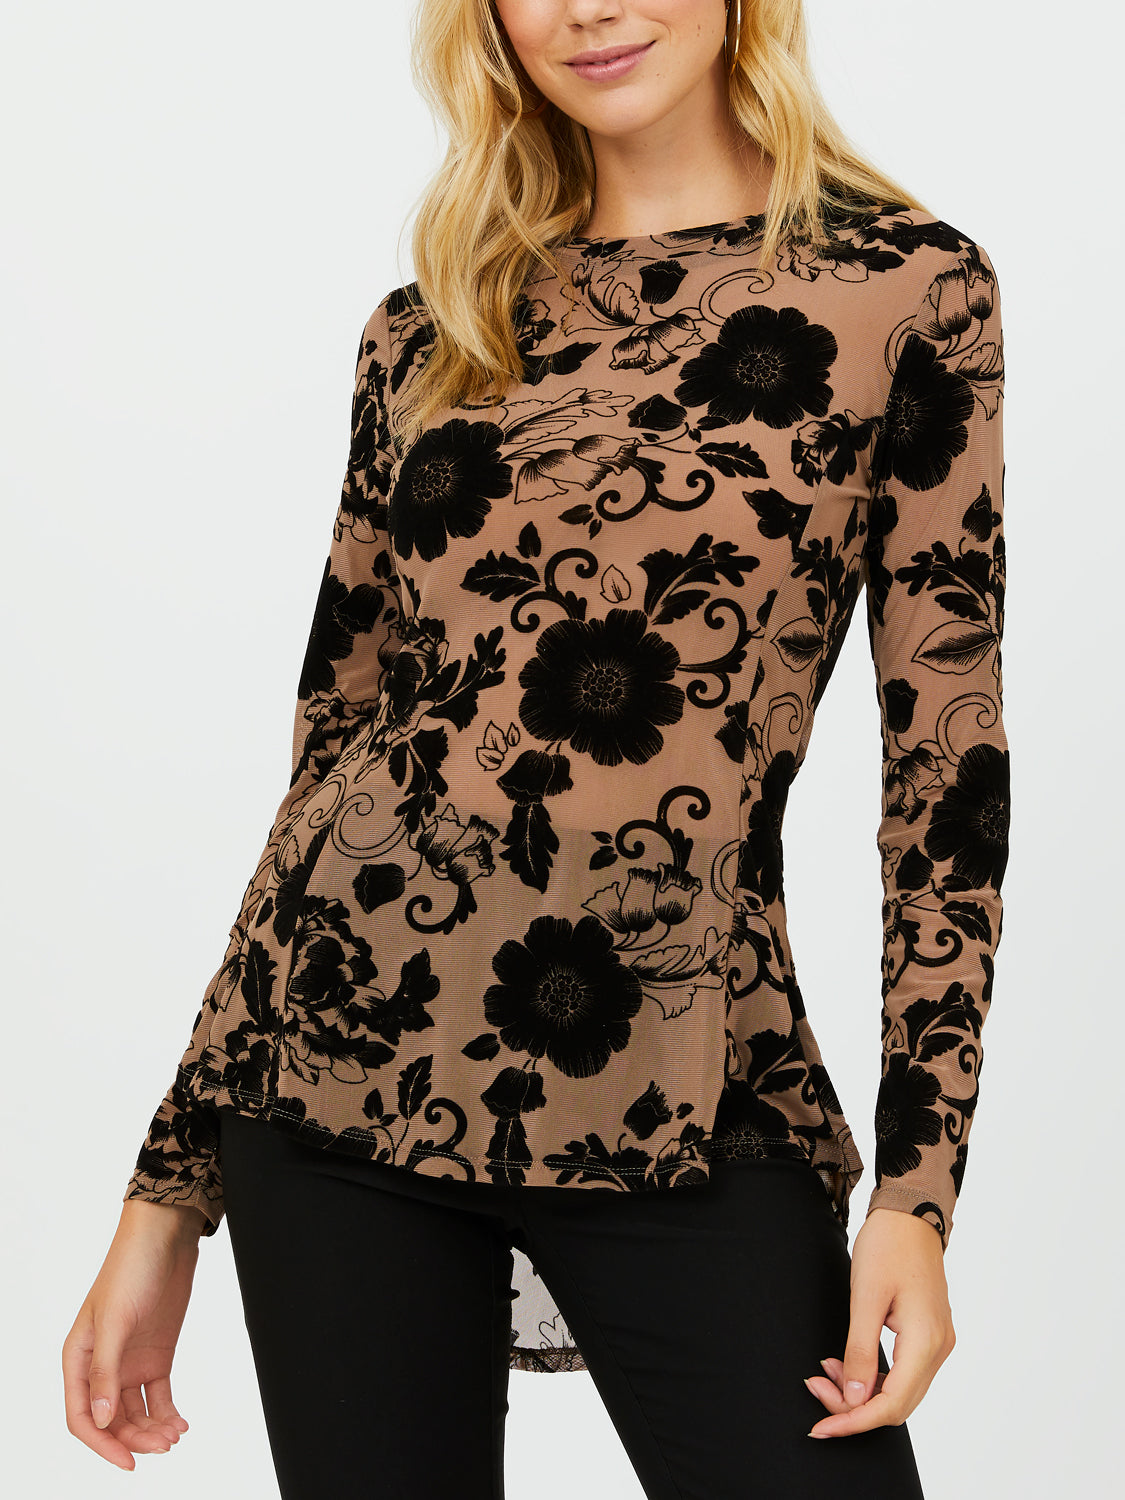 Long Sleeve Fit & Flare Crew Neck Top